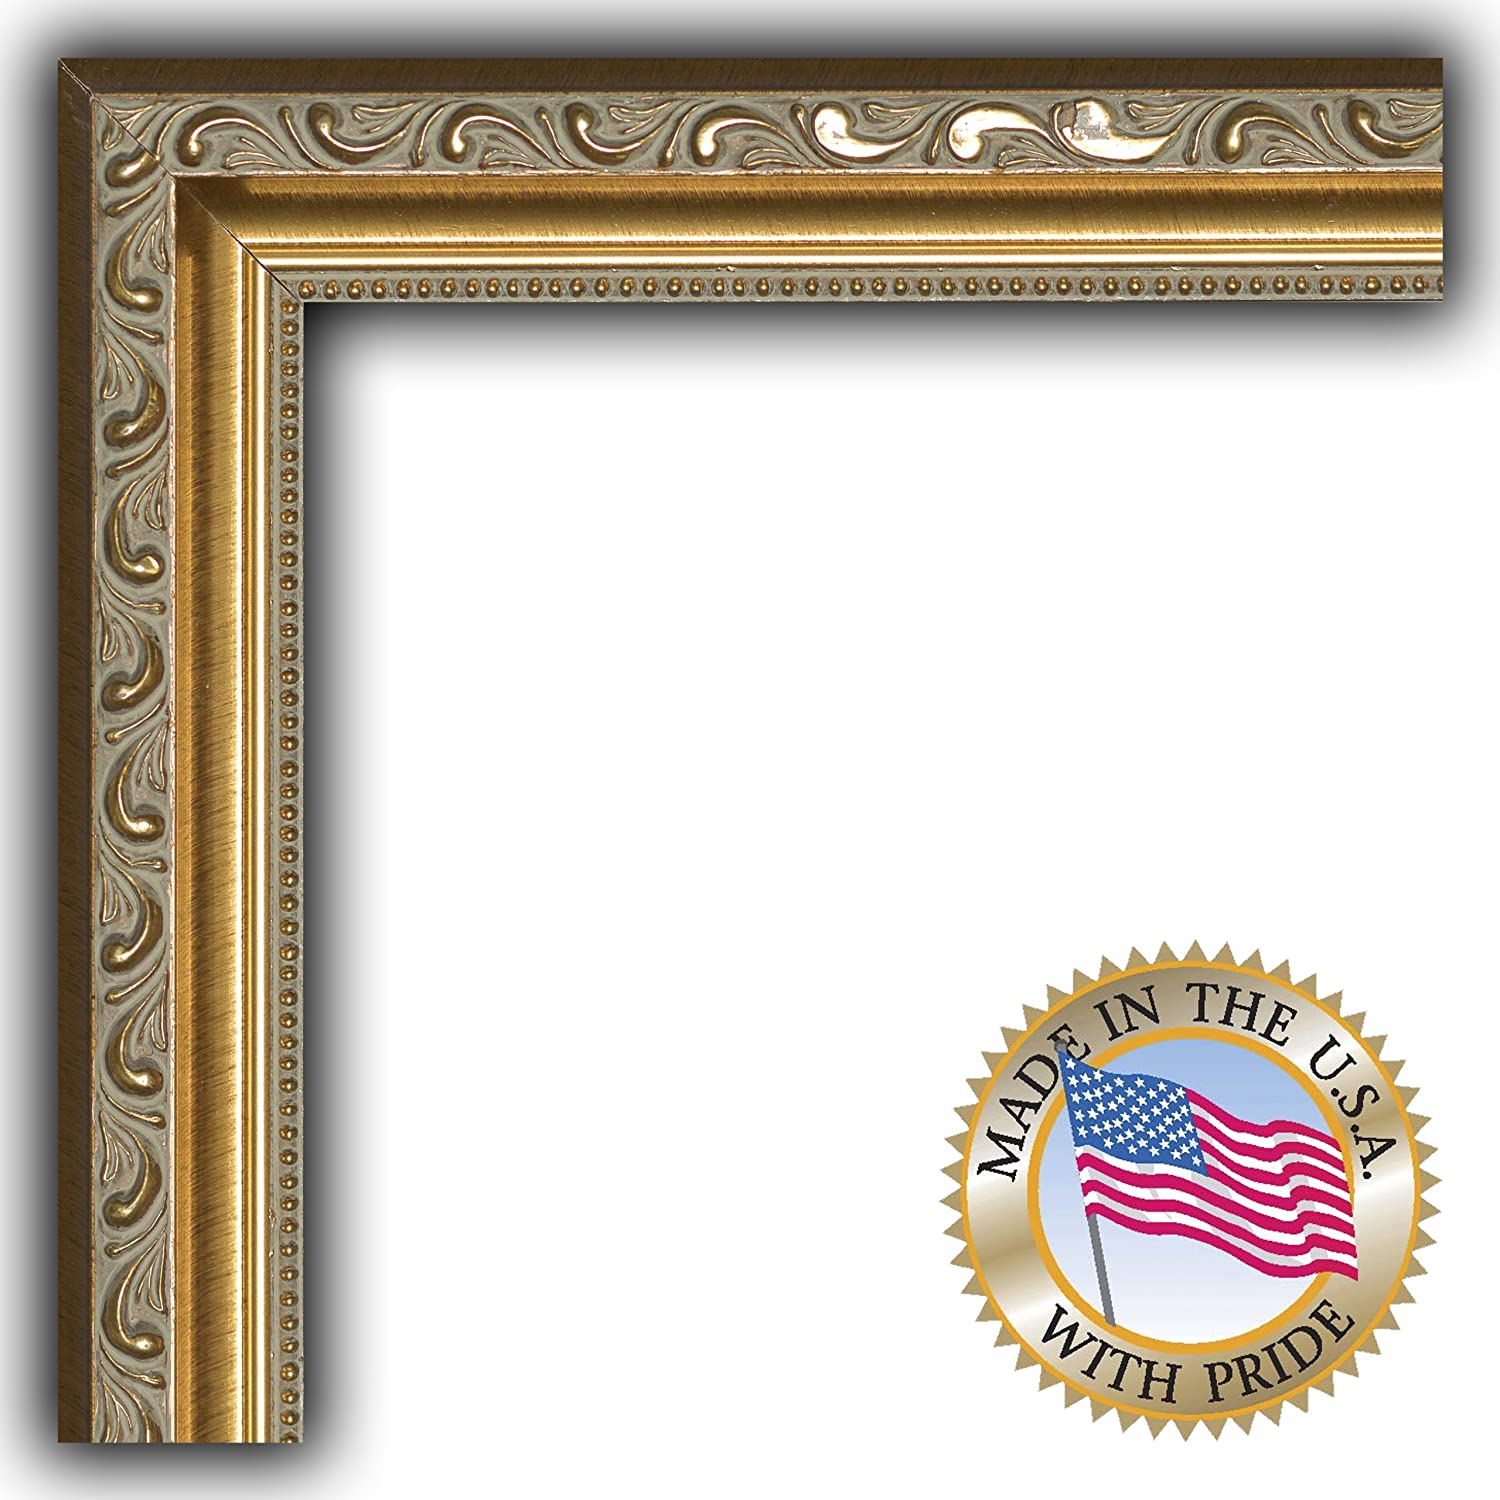 Amazon arttoframes 3x5 3 x 5 picture frame gold with beads amazon arttoframes 3x5 3 x 5 picture frame gold with beads 1625 wide 2womd10051 single frames jeuxipadfo Image collections